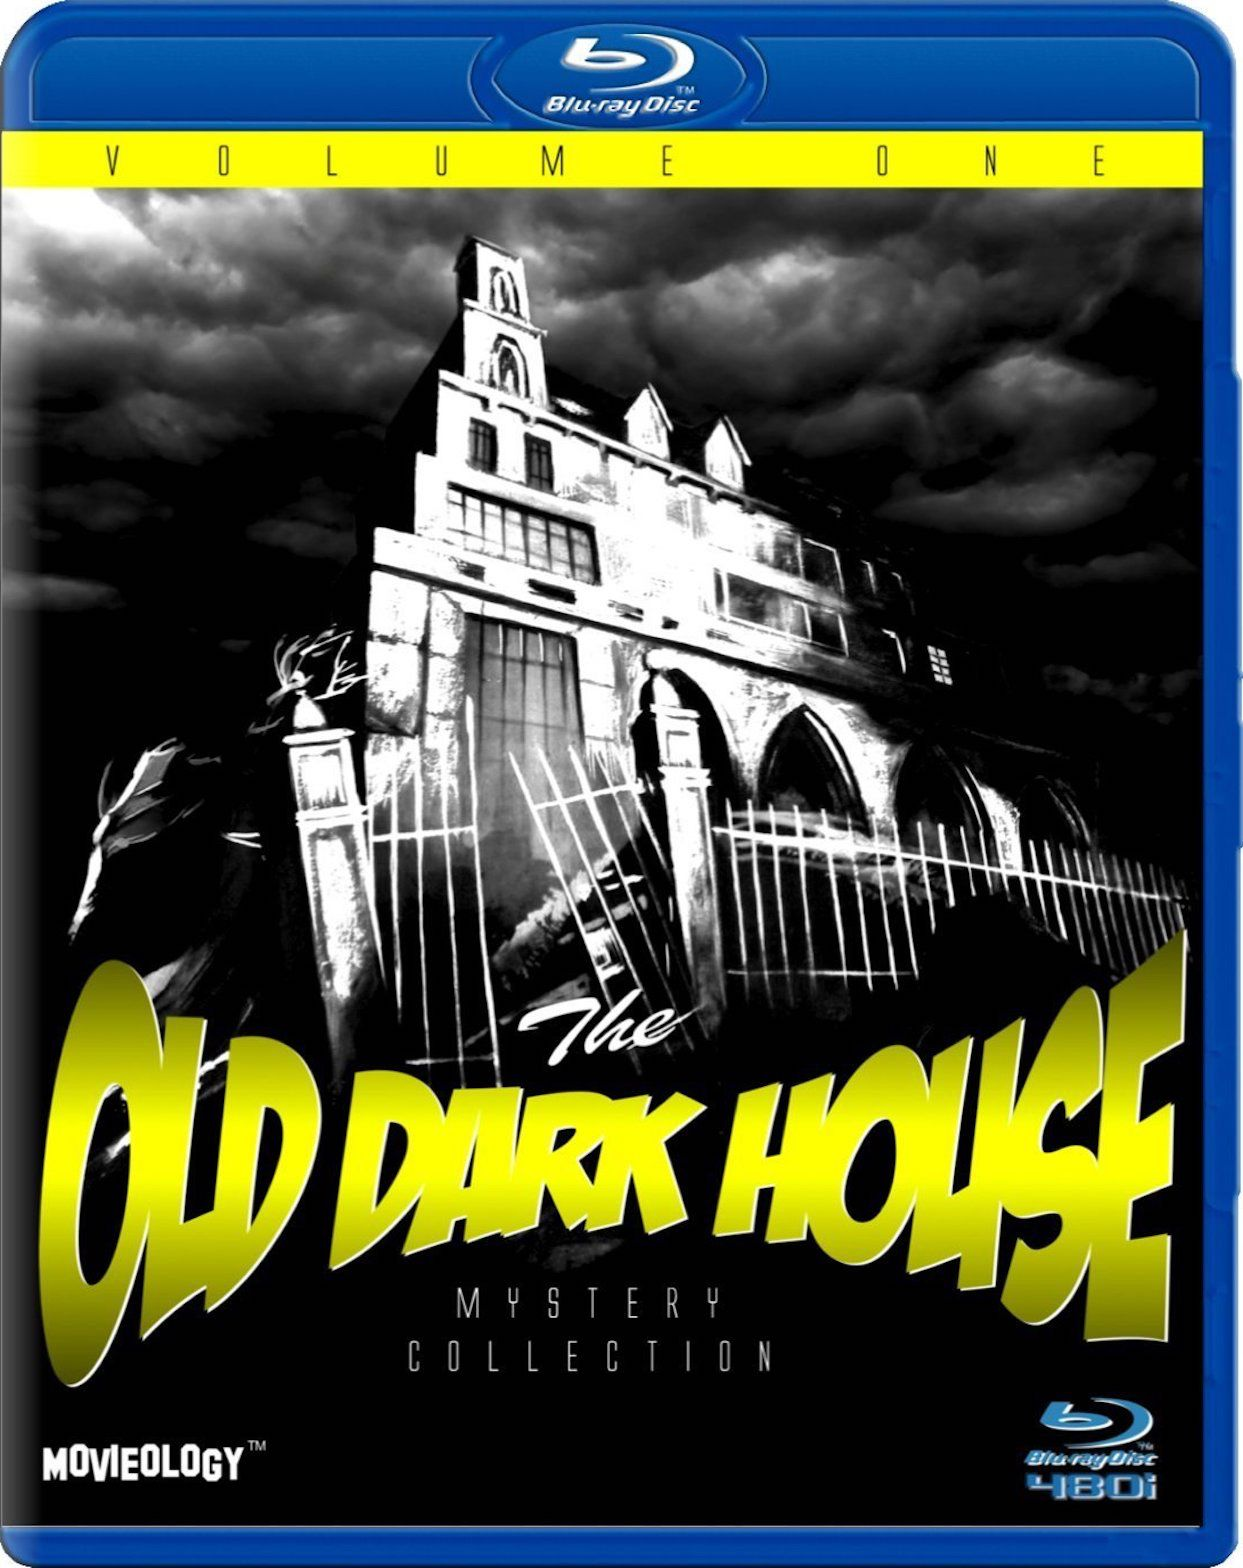 THE OLD DARK HOUSE MYSTERY COLLECTION VOLUME ONE BLU-RAY